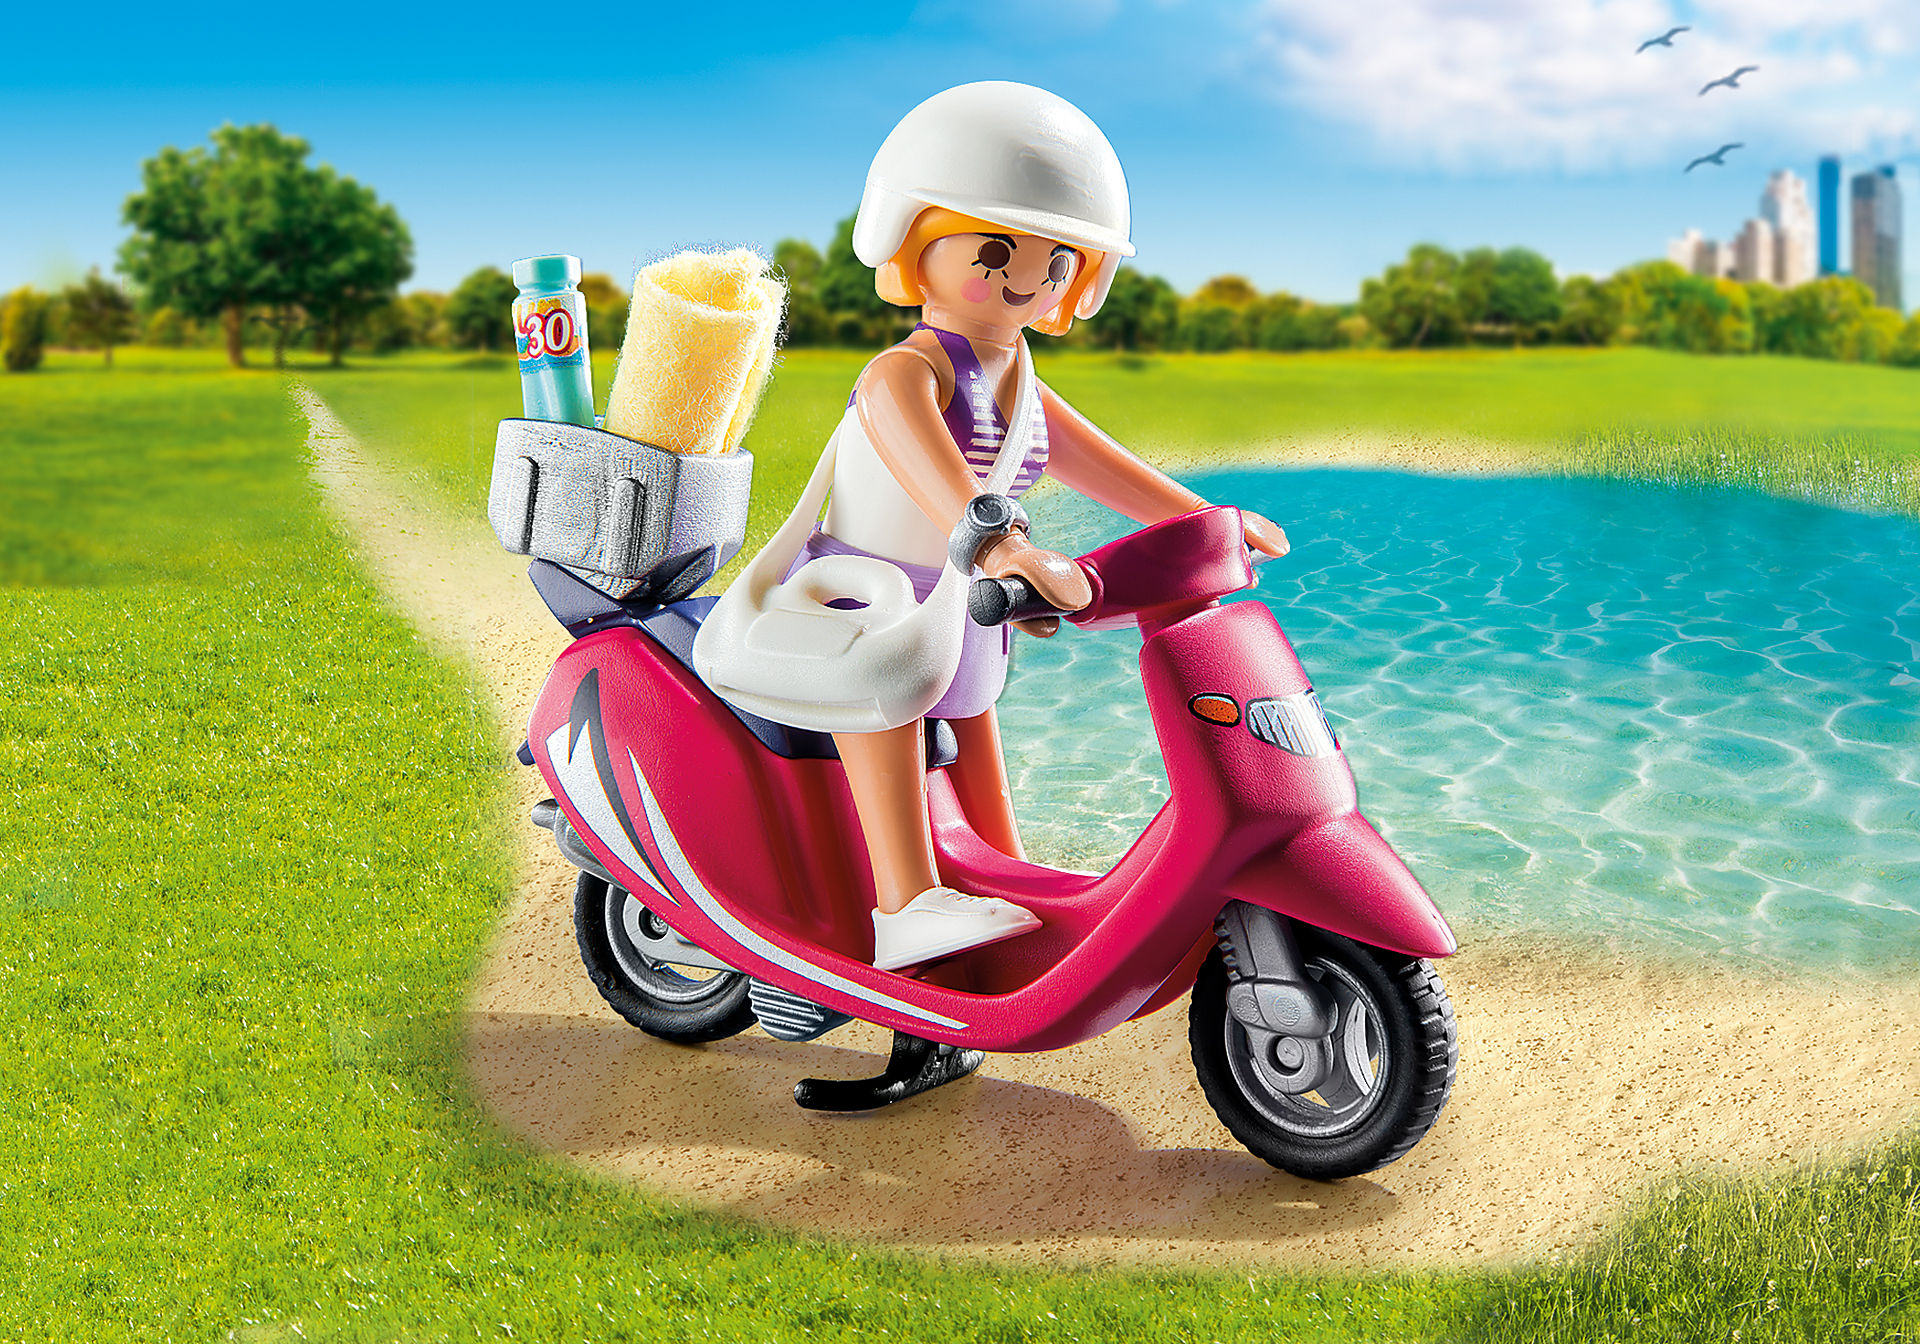 http://media.playmobil.com/i/playmobil/9084_product_detail/Mulher com Scooter